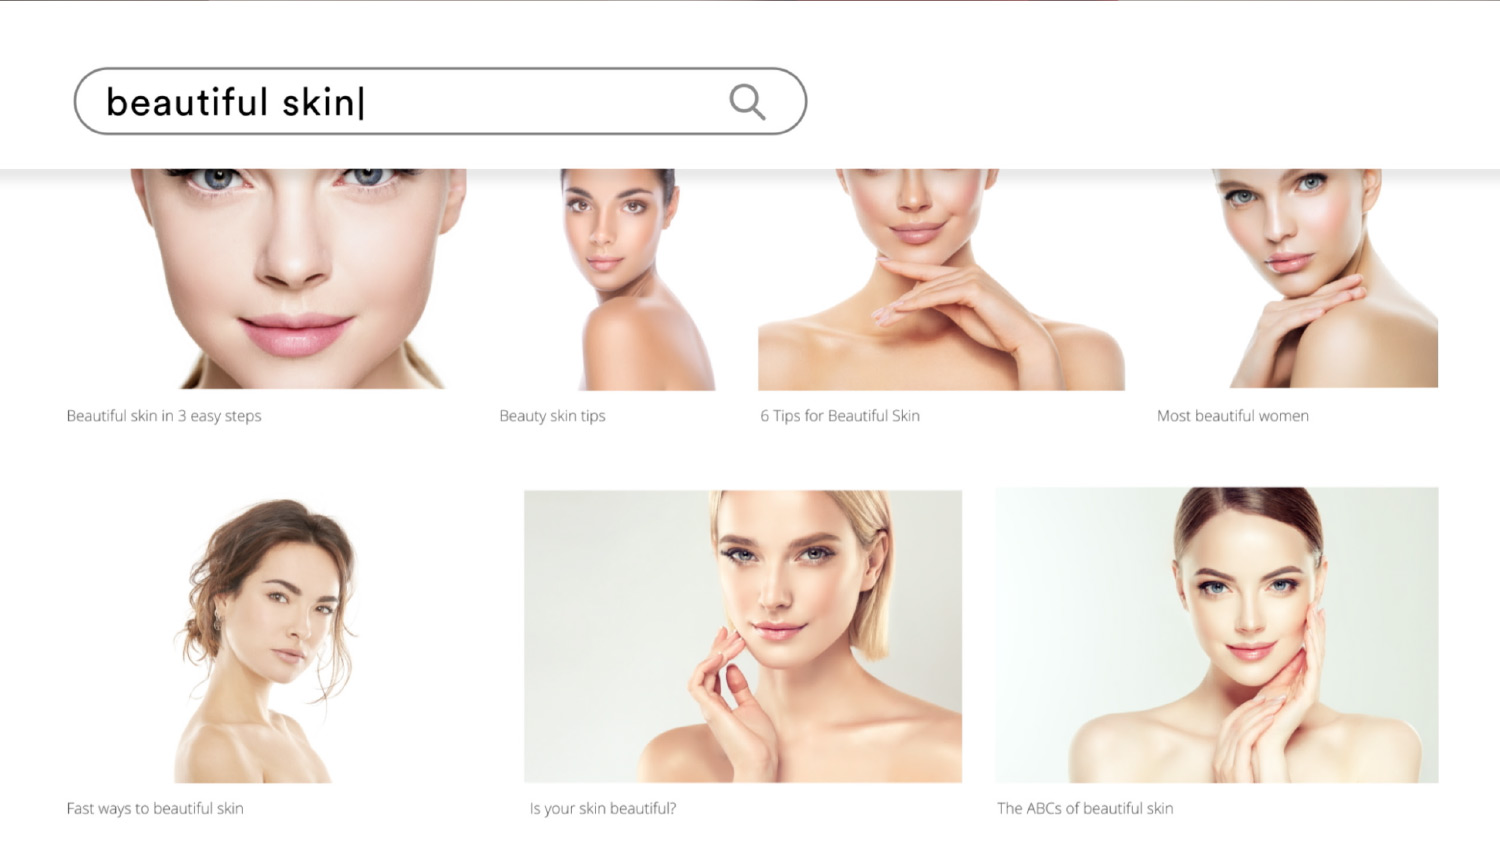 Search bar and search results for beautiful skin. Seven overly photoshopped beauty portraits of caucasion women.